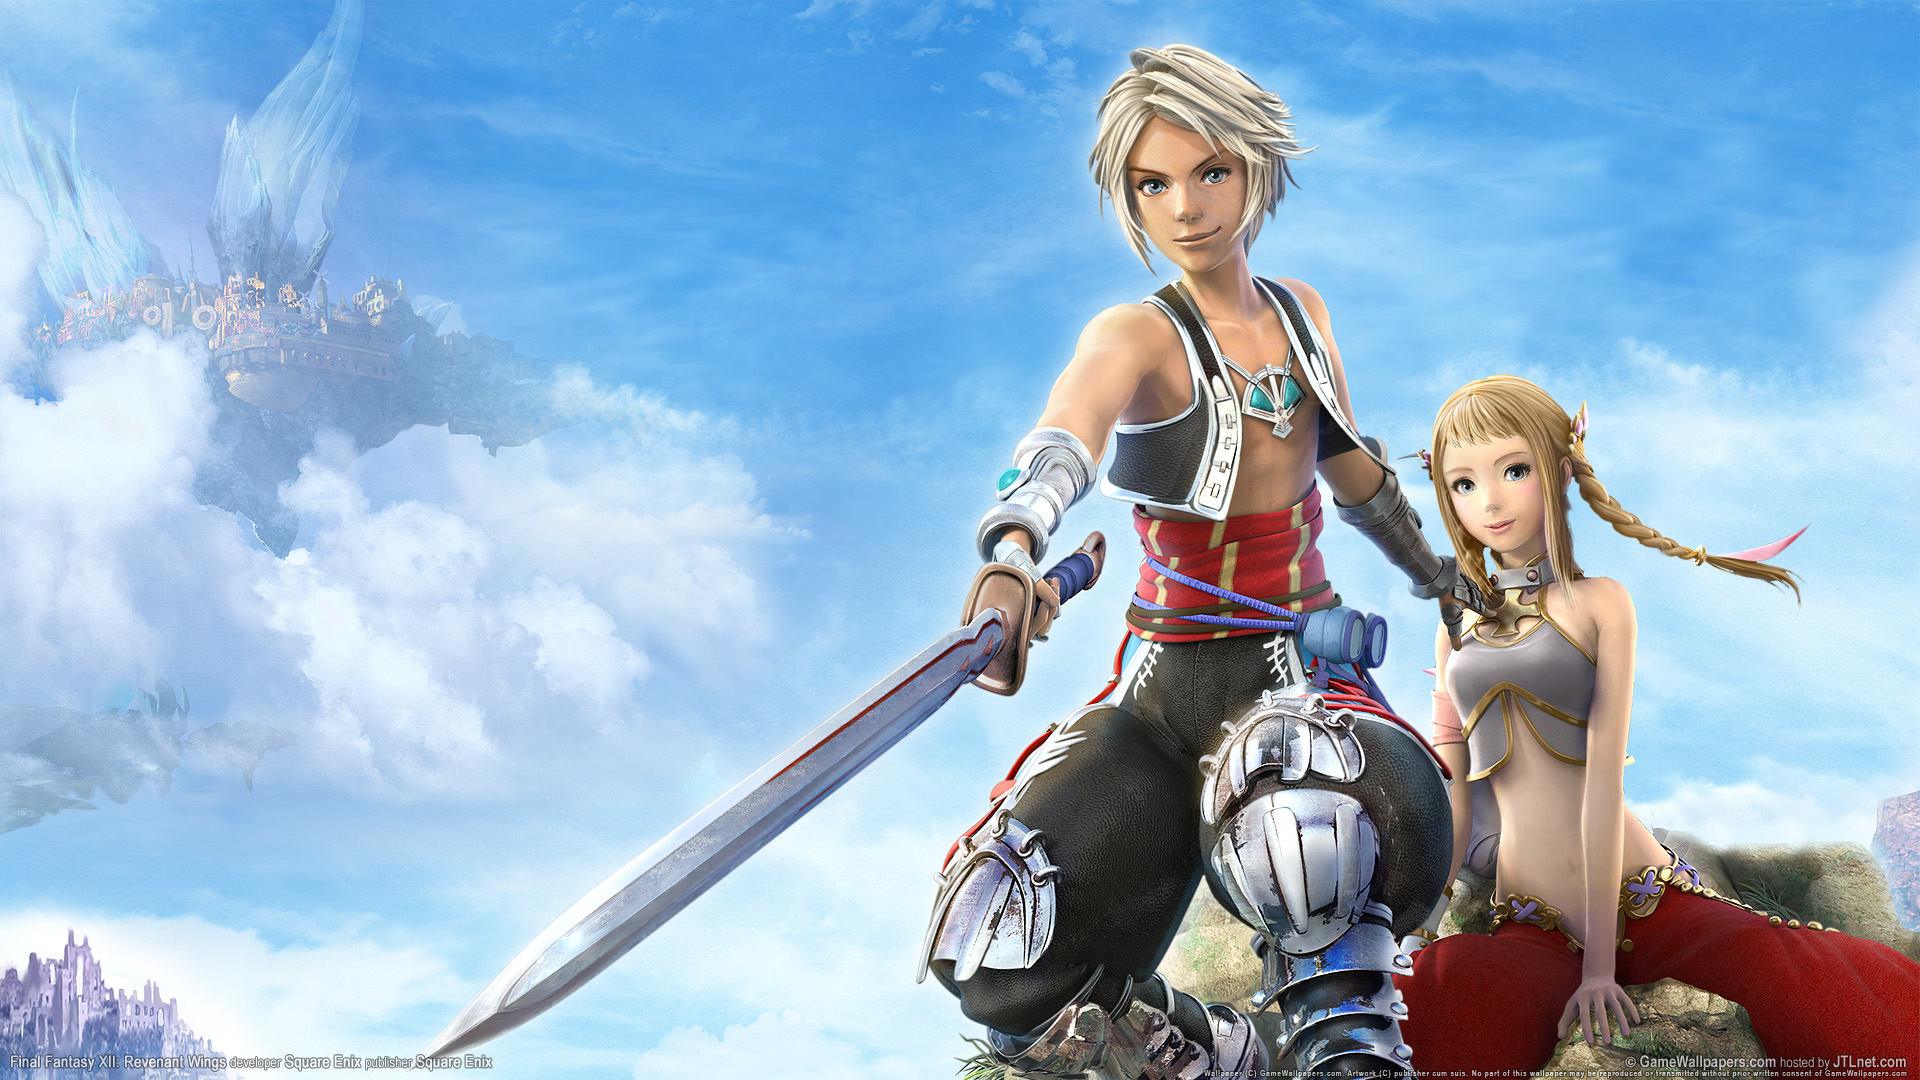 Final fantasy 12 Wallpapers HD Wallpapers 1920x1080